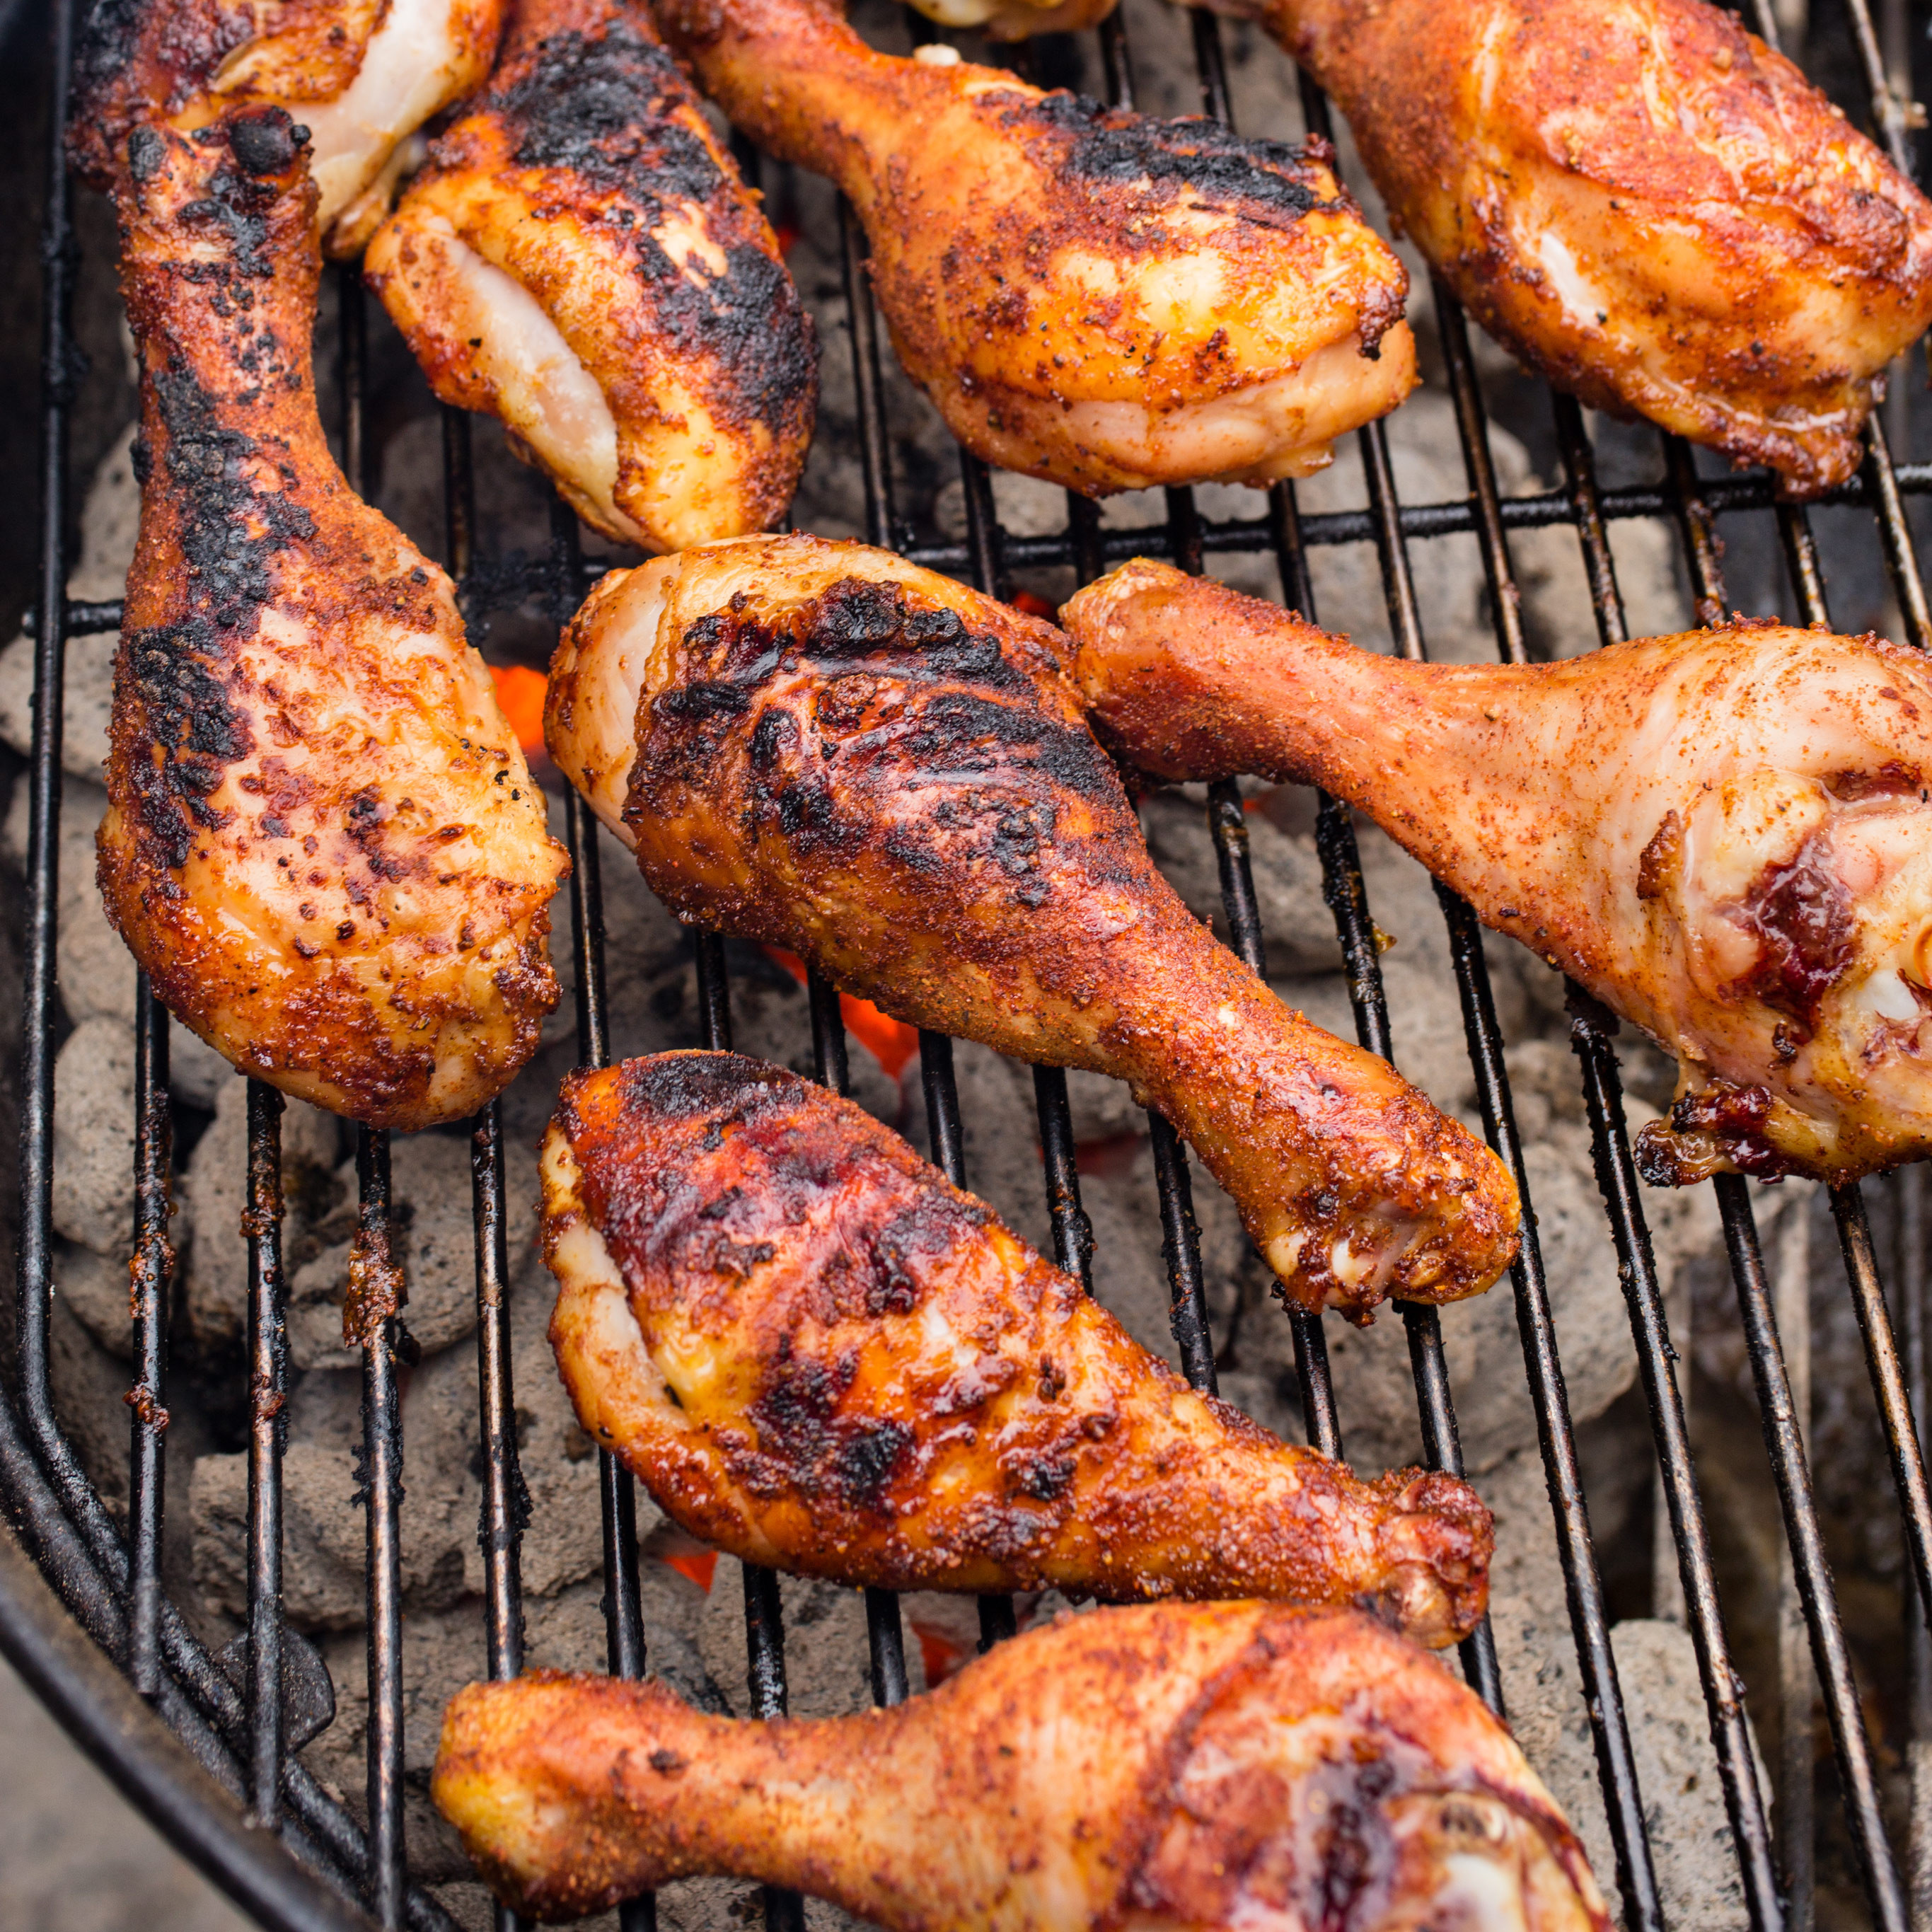 Chicken Legs On Grill  Grilled Spice Rubbed Chicken Drumsticks